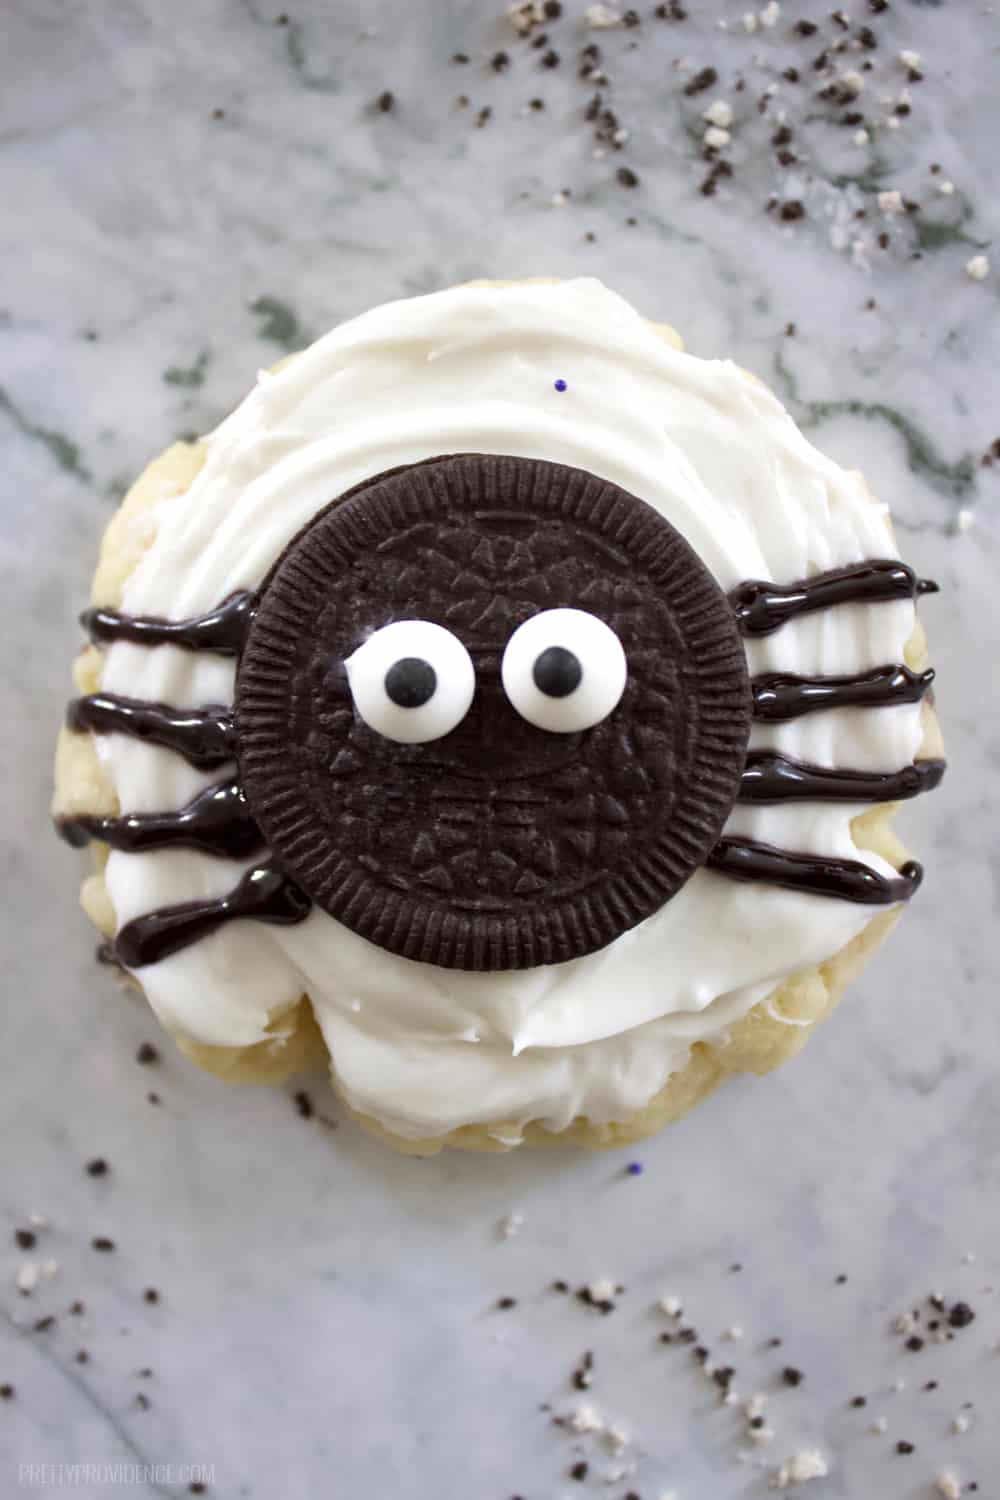 sugar cookie with an oreo spider on top sitting on a granite counter